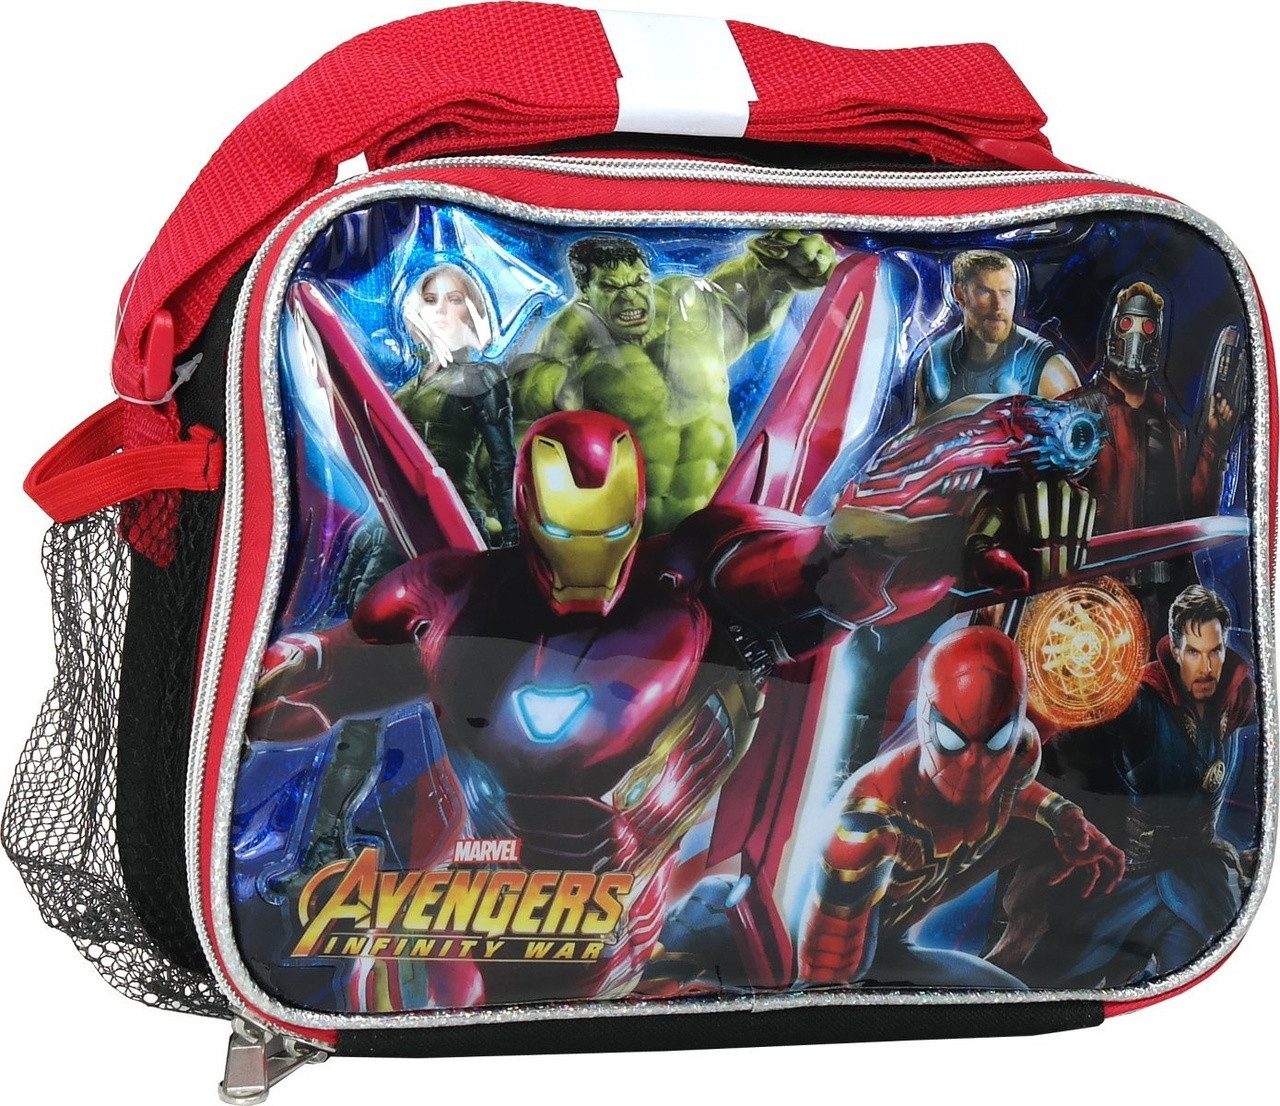 Lunch Box - Avengers: Infinity Wars - Insulated - Red